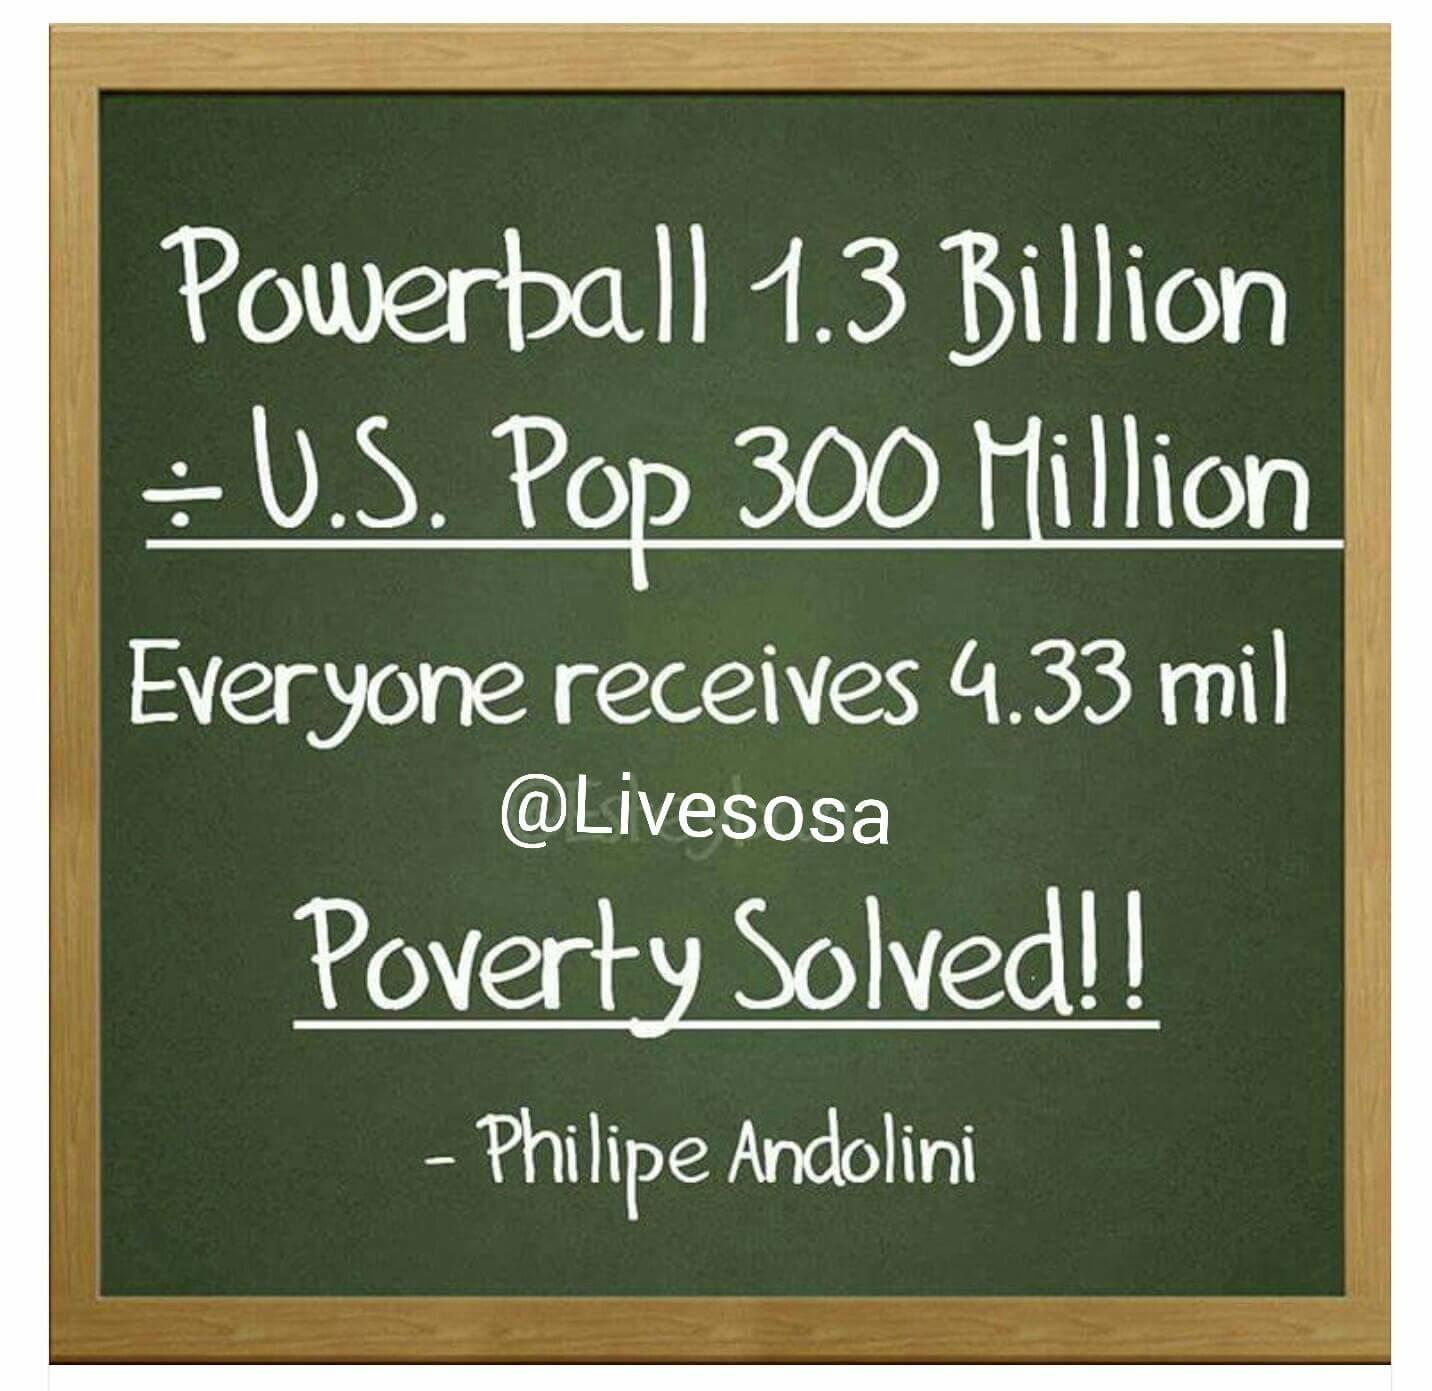 Trending Powerball: Plan To Divide Money Among All American Is Bad Math